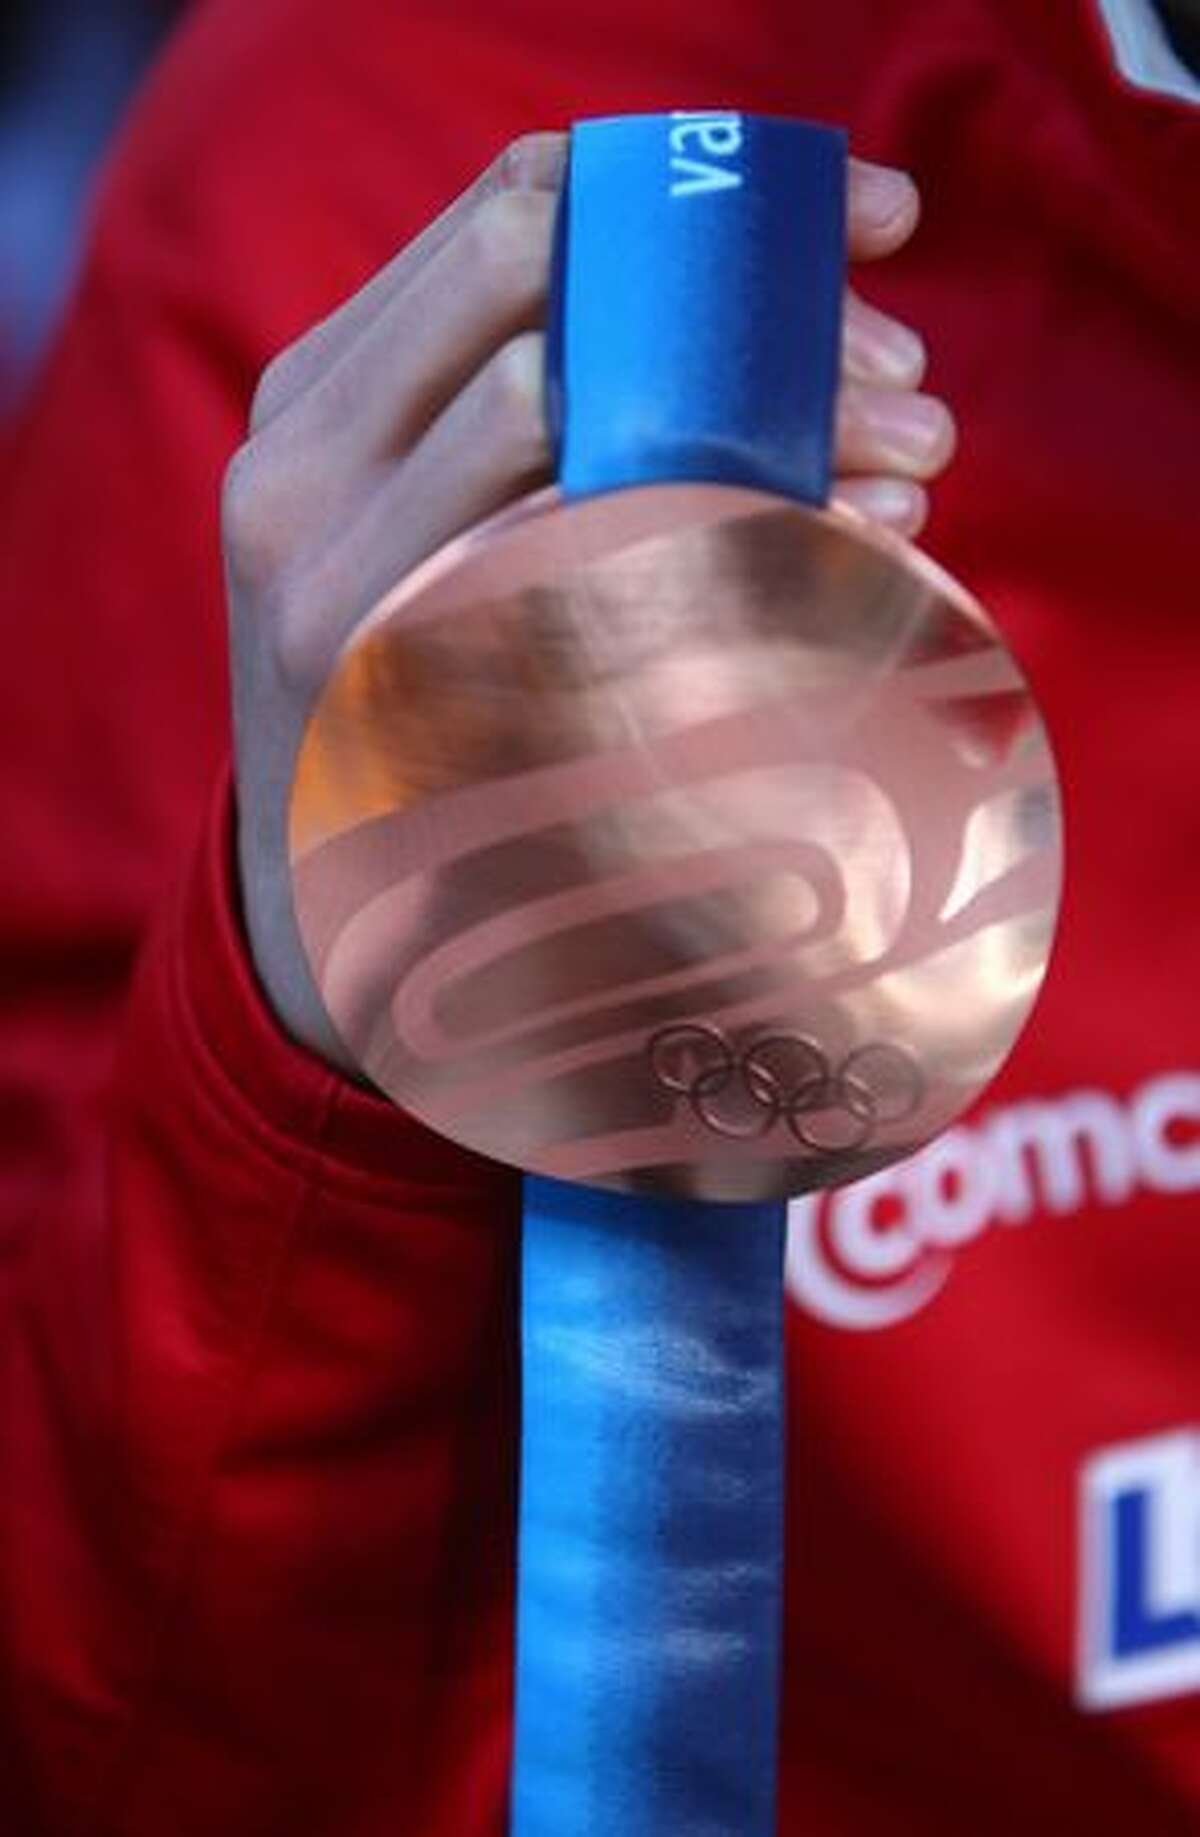 Olympic speedskater J.R. Celski shows his bronze medal during an event honoring local Olympians.